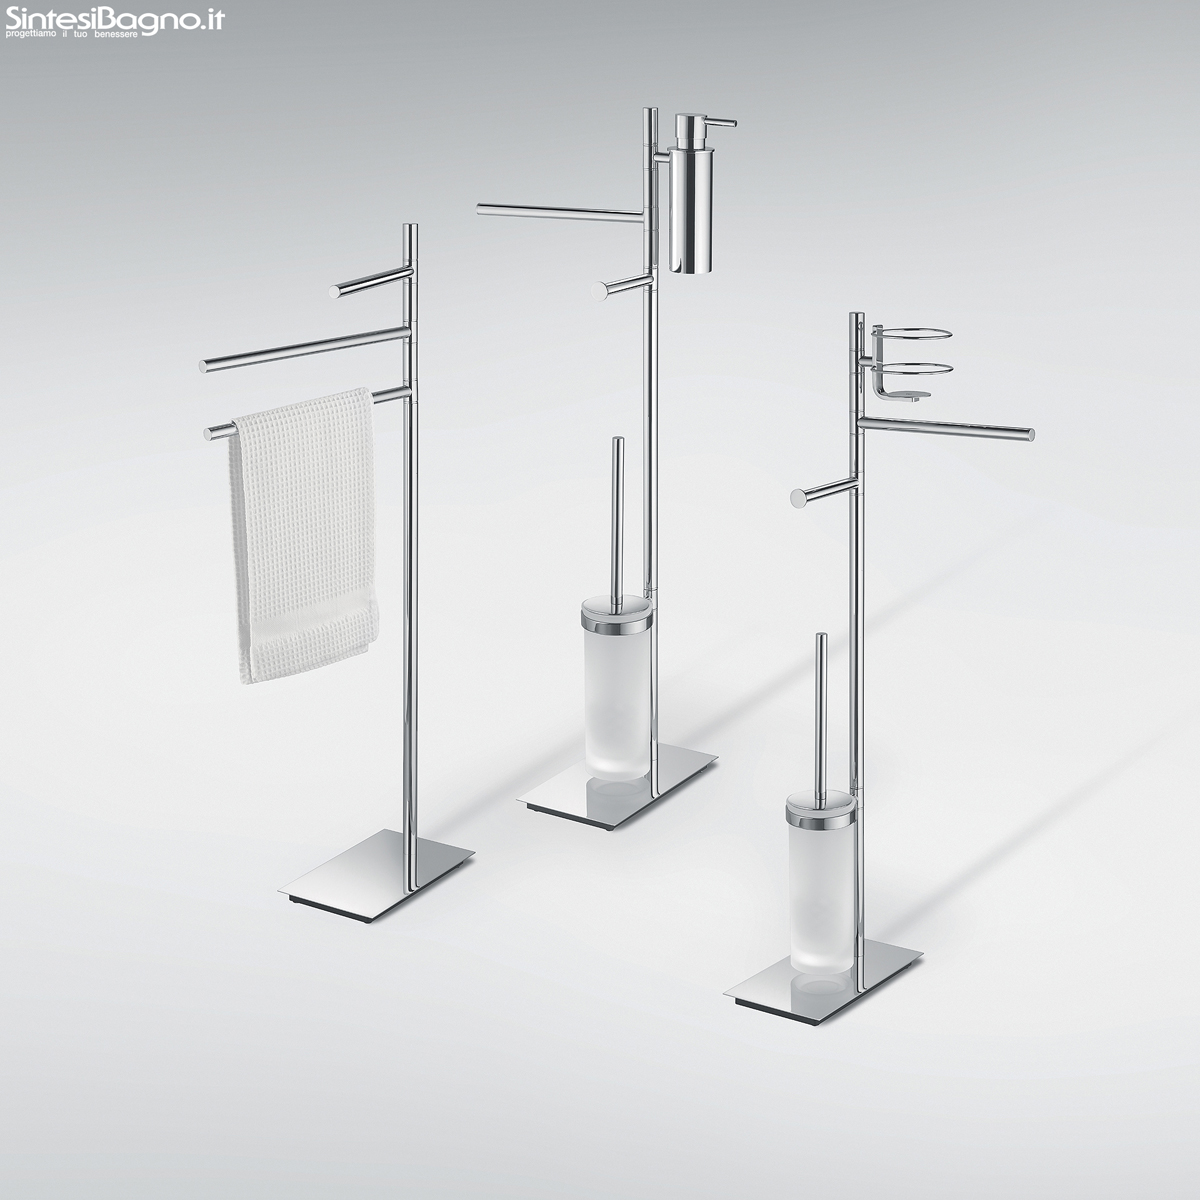 Piantane e colonne serie square di colombo design for Accessori bagno moderni